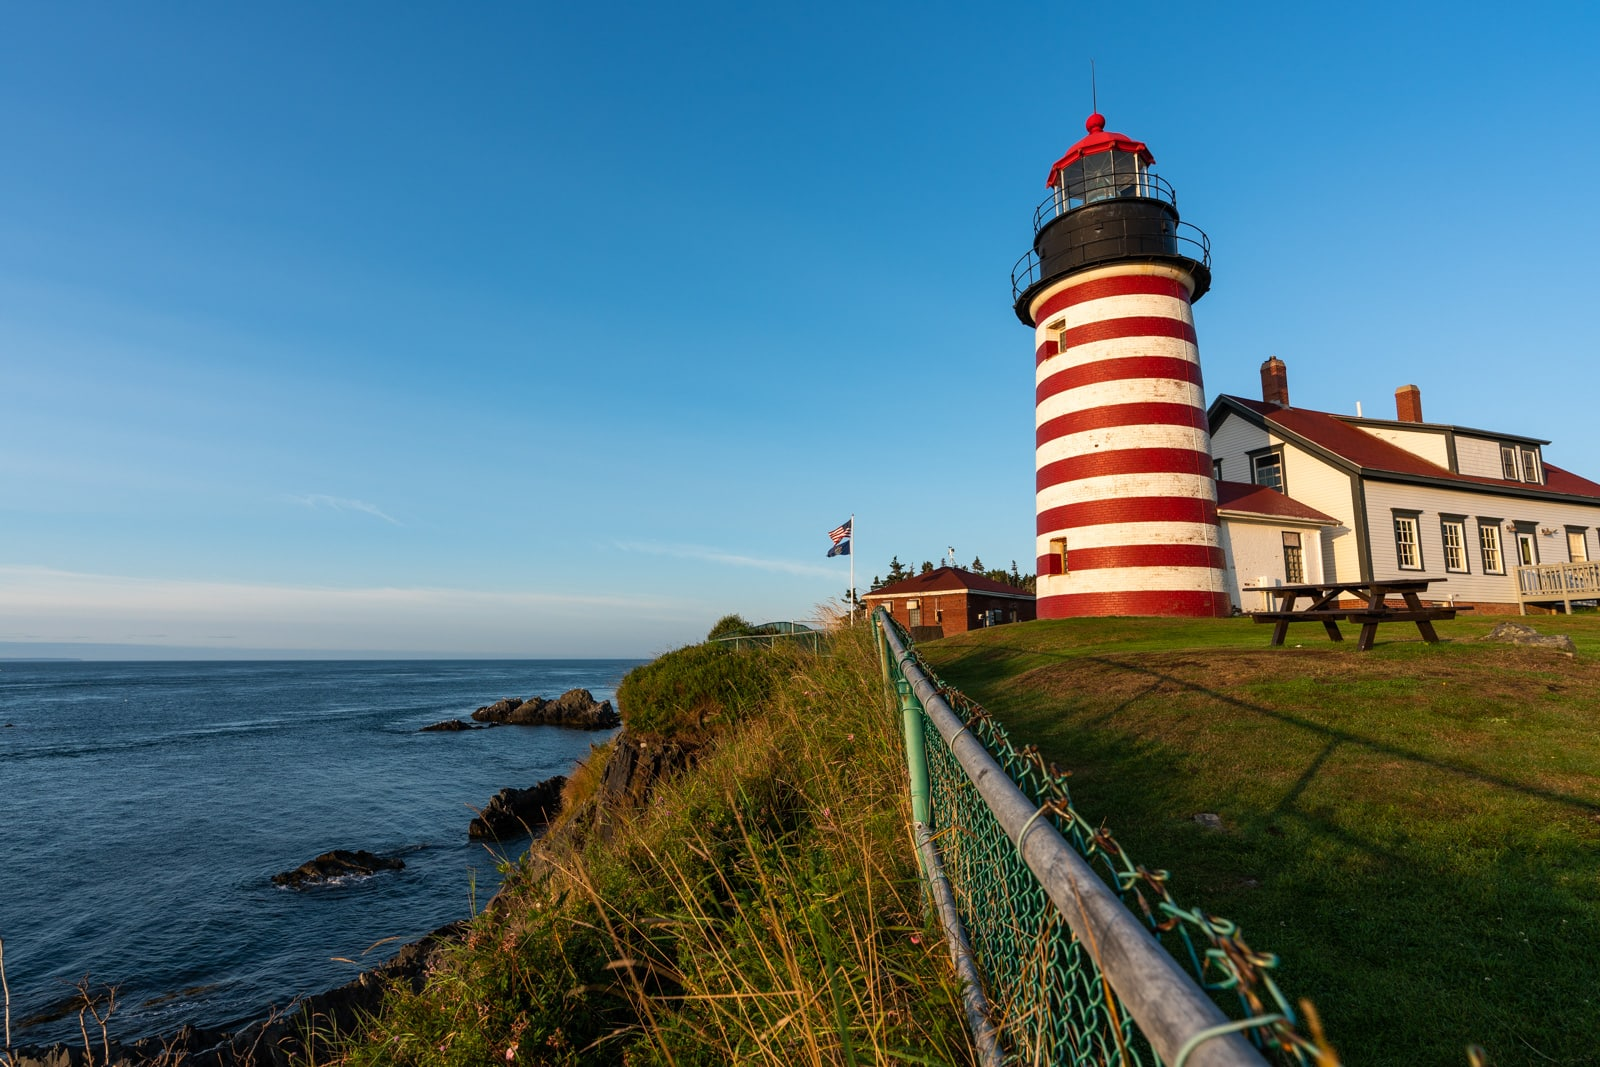 Cliffside view of West Quoddy Head lighthouse in Lubec, Maine